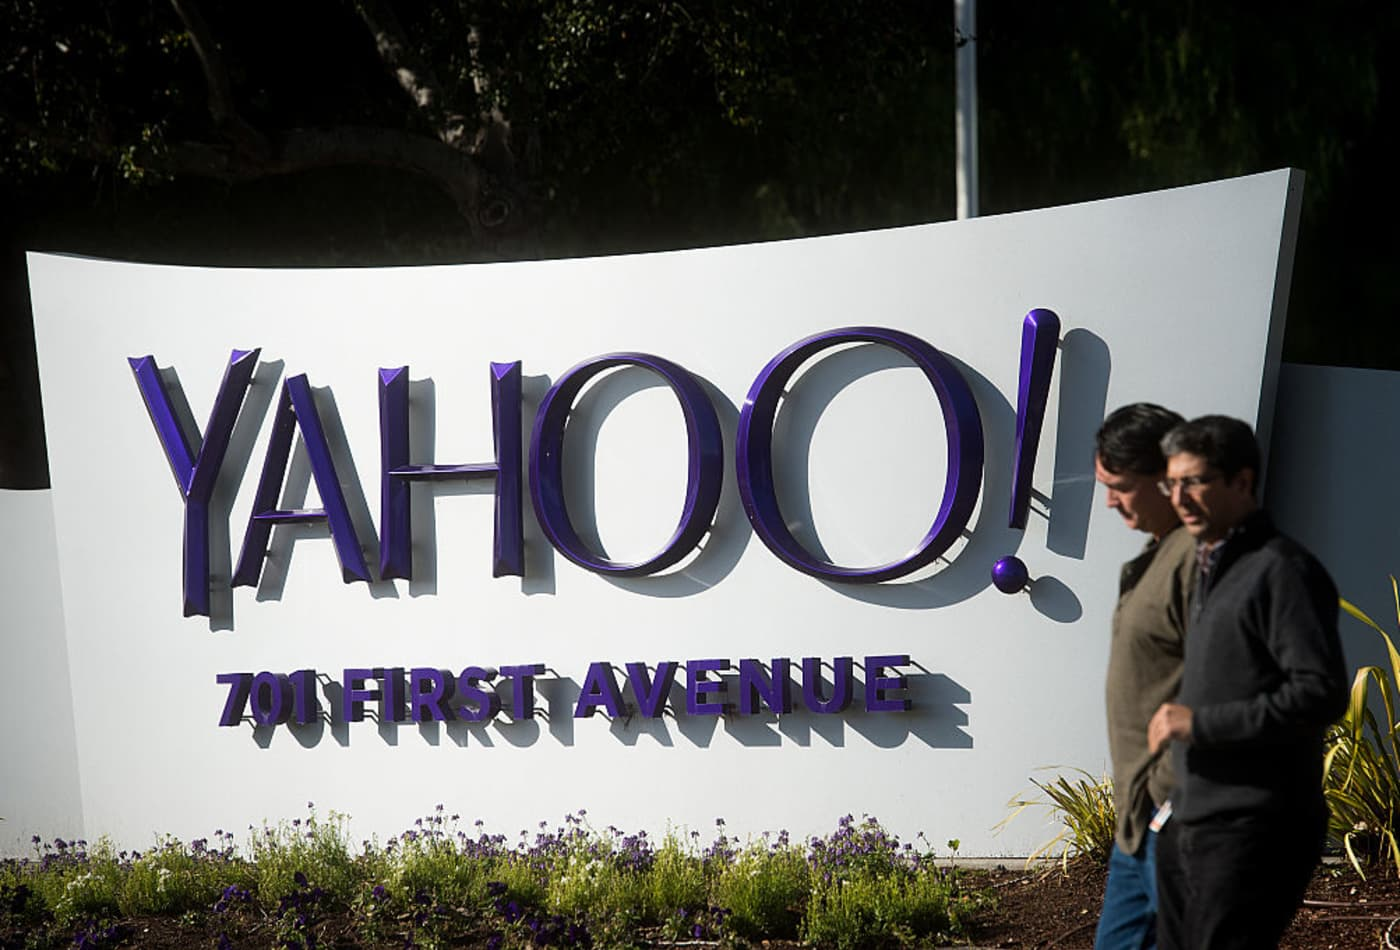 Yahoo and AOL are said to scan emails for data to sell to advertisers